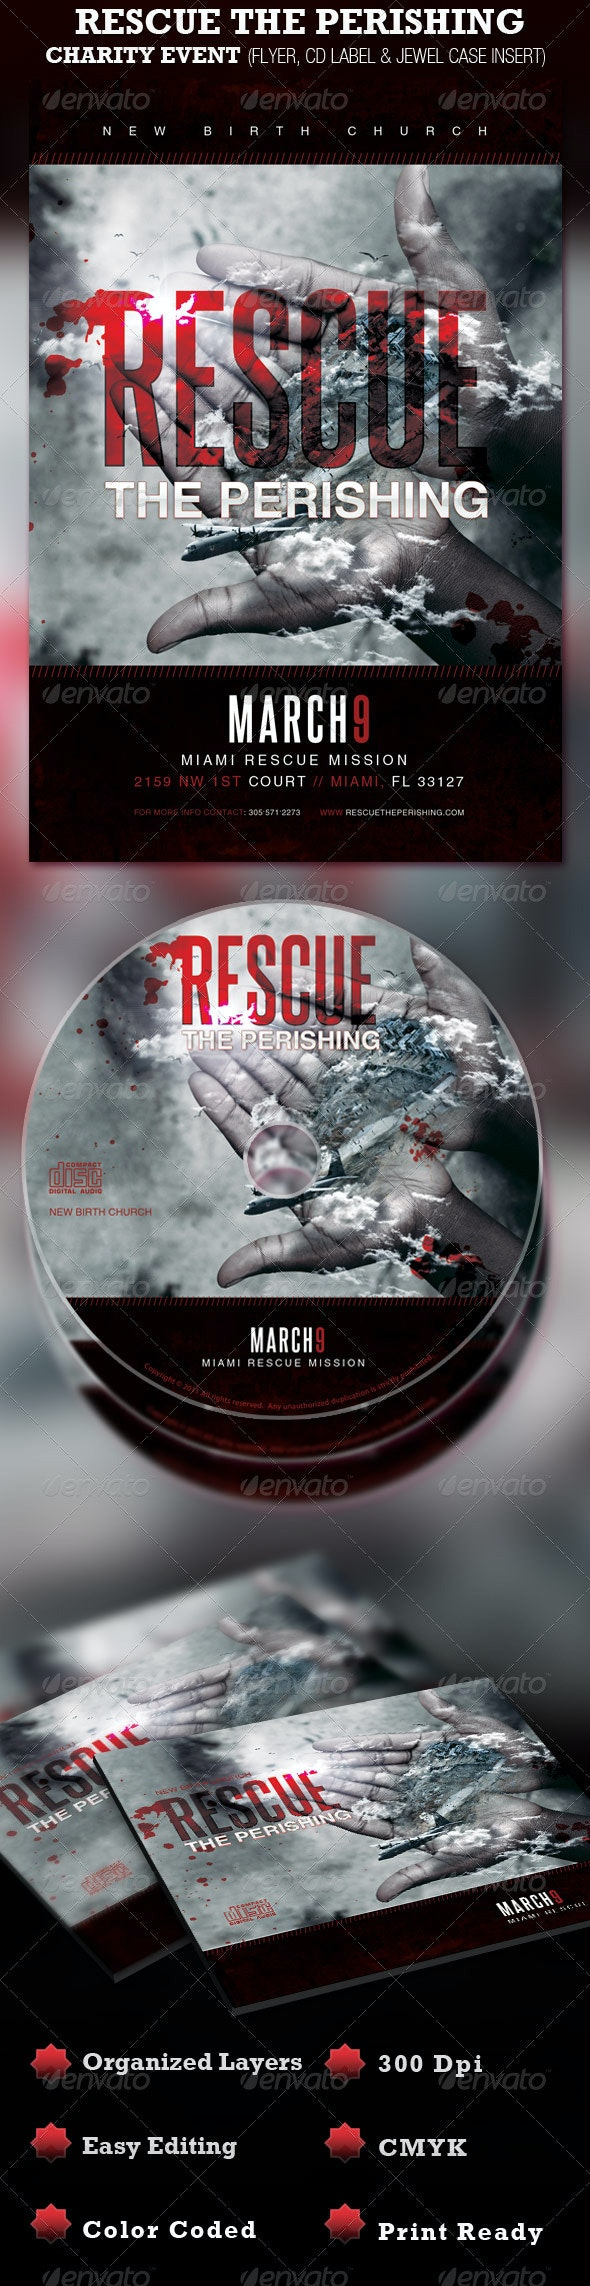 Rescue the Perishing Charity Event Flyer & CD - Church Flyers